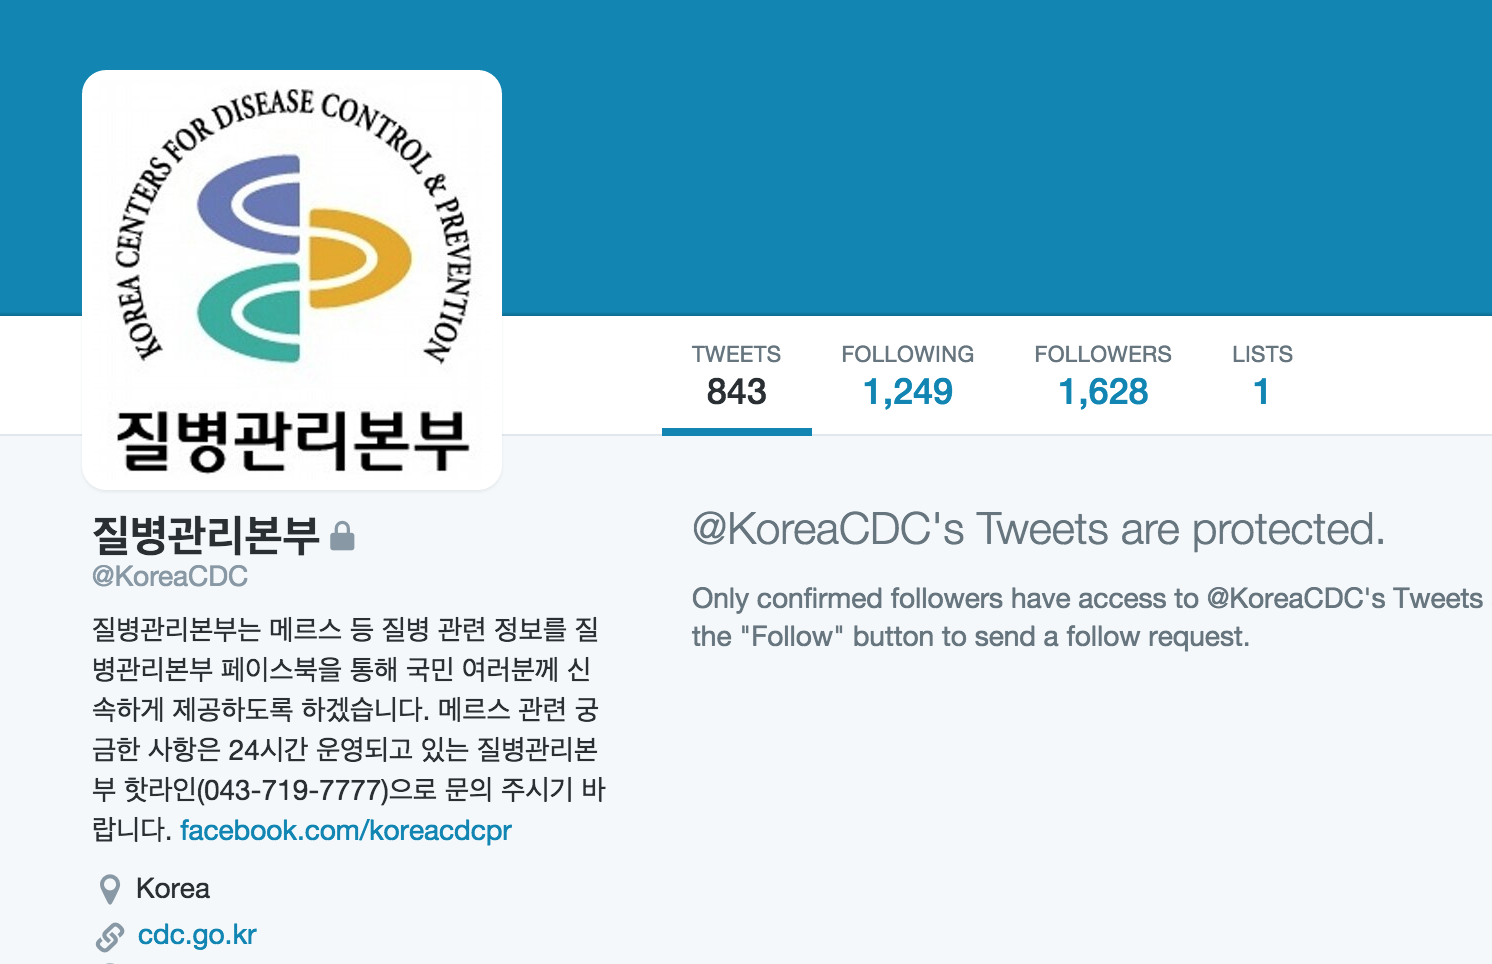 @koreacdc korea center for disease control and prevention twitter